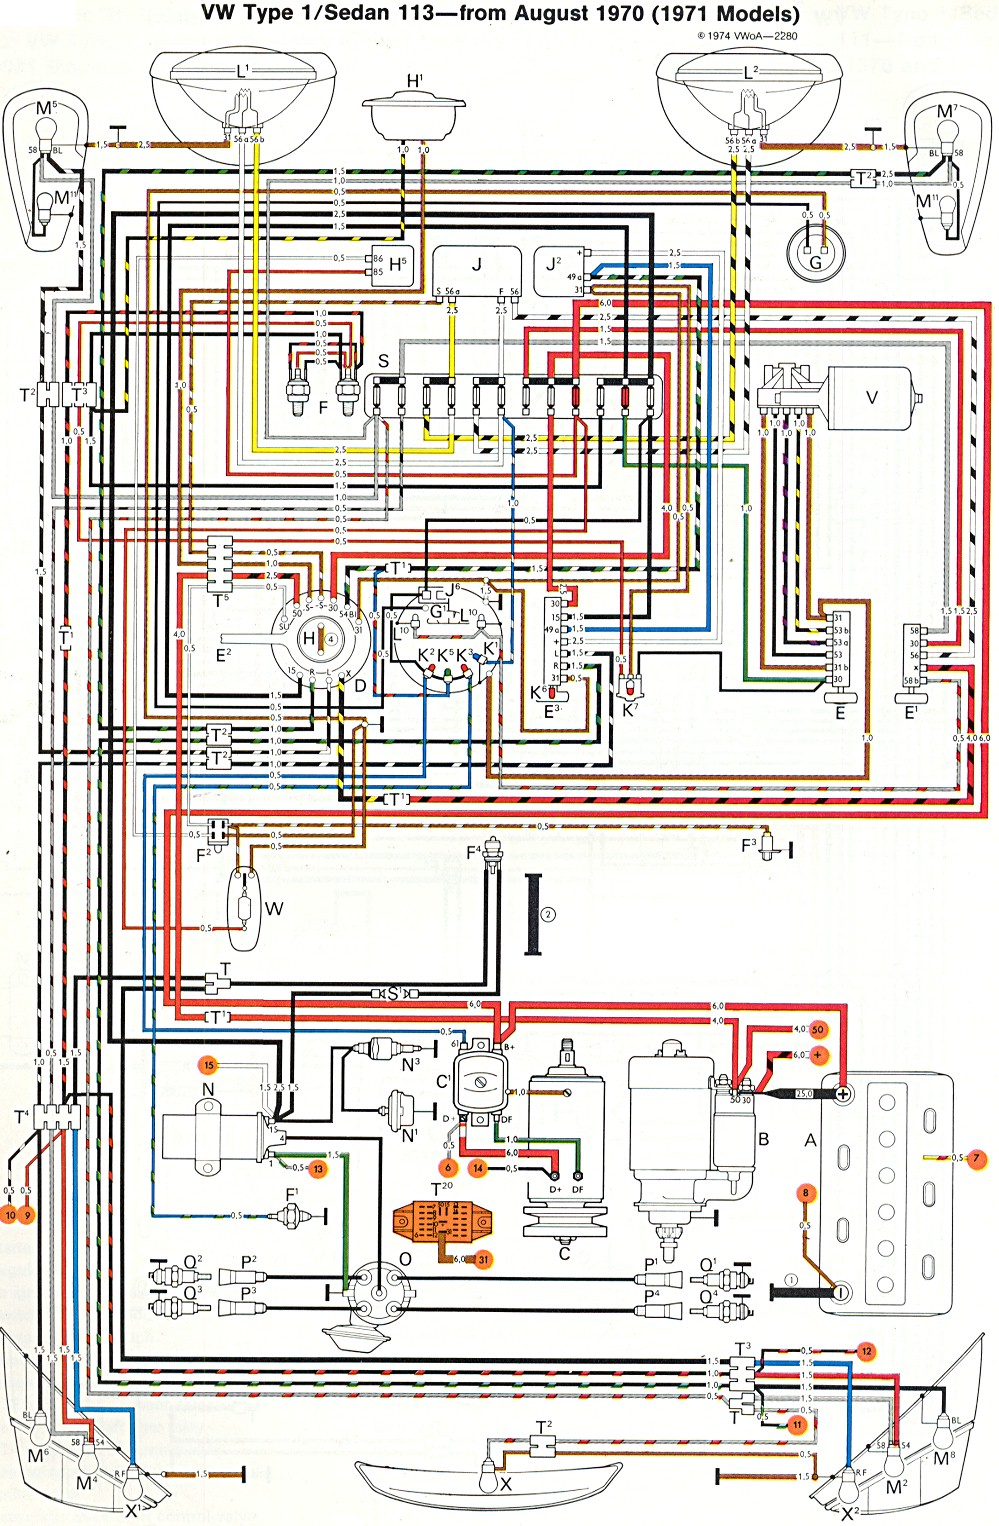 bug_super_71 1971 super beetle wiring diagram thegoldenbug com vw bug wiring diagram at creativeand.co